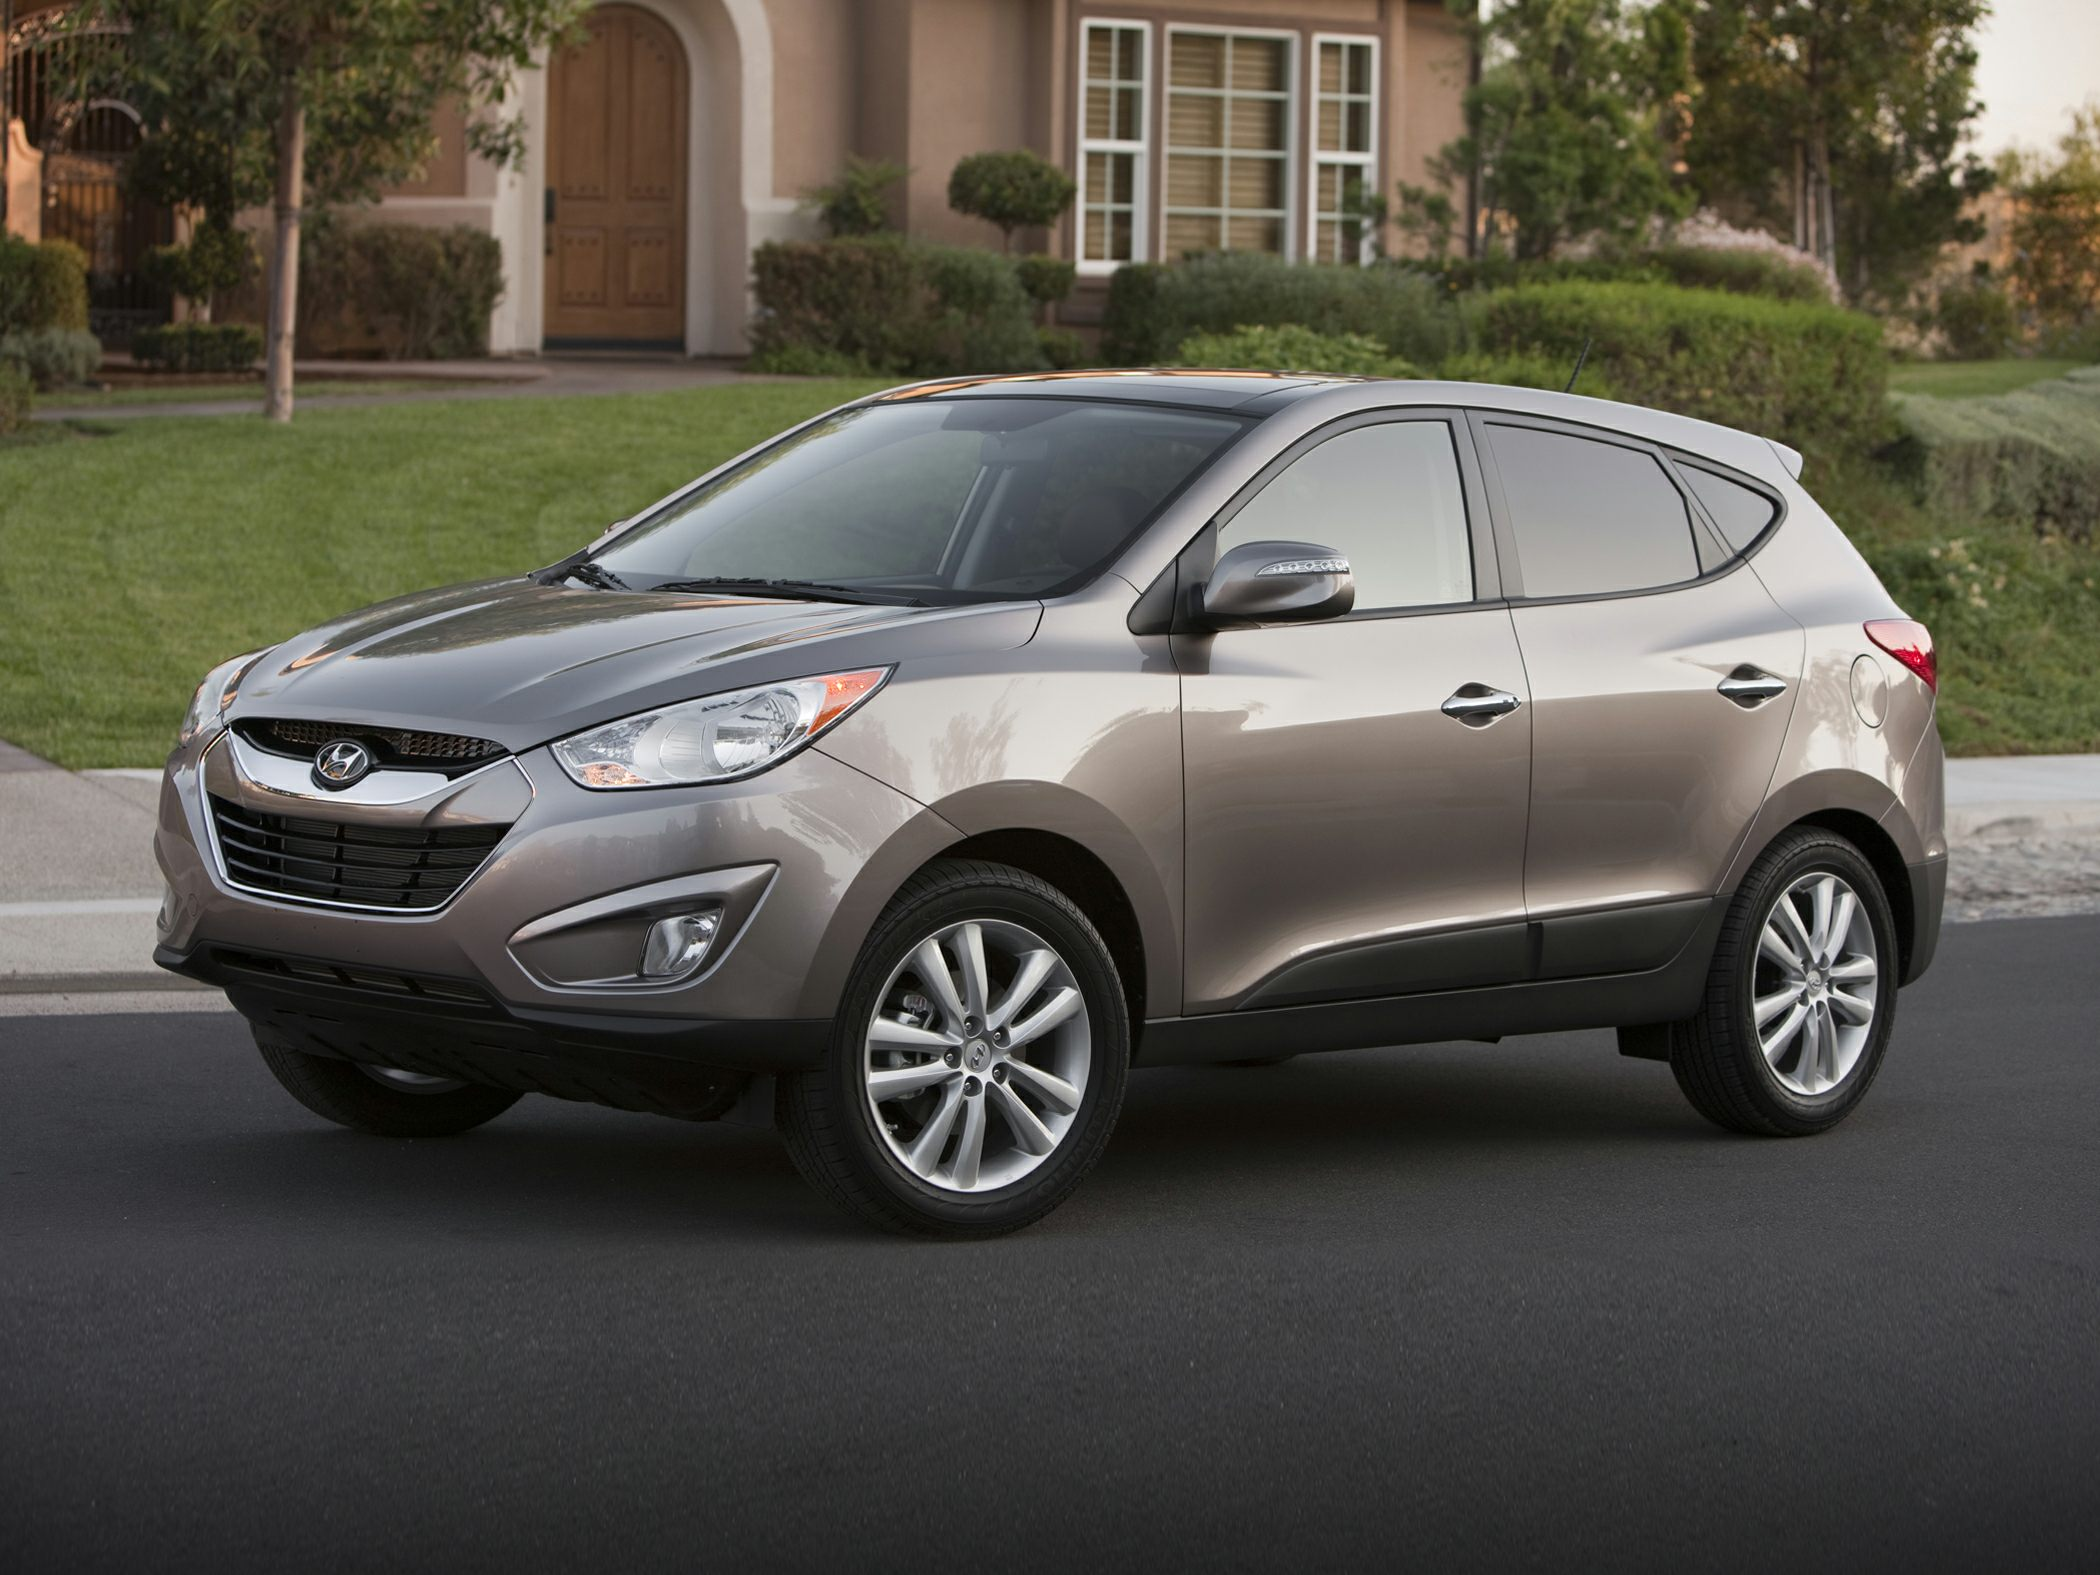 2011 Hyundai Tucson Limited All the right ingredients Wonderful fuel economy for an SUV New Arriv